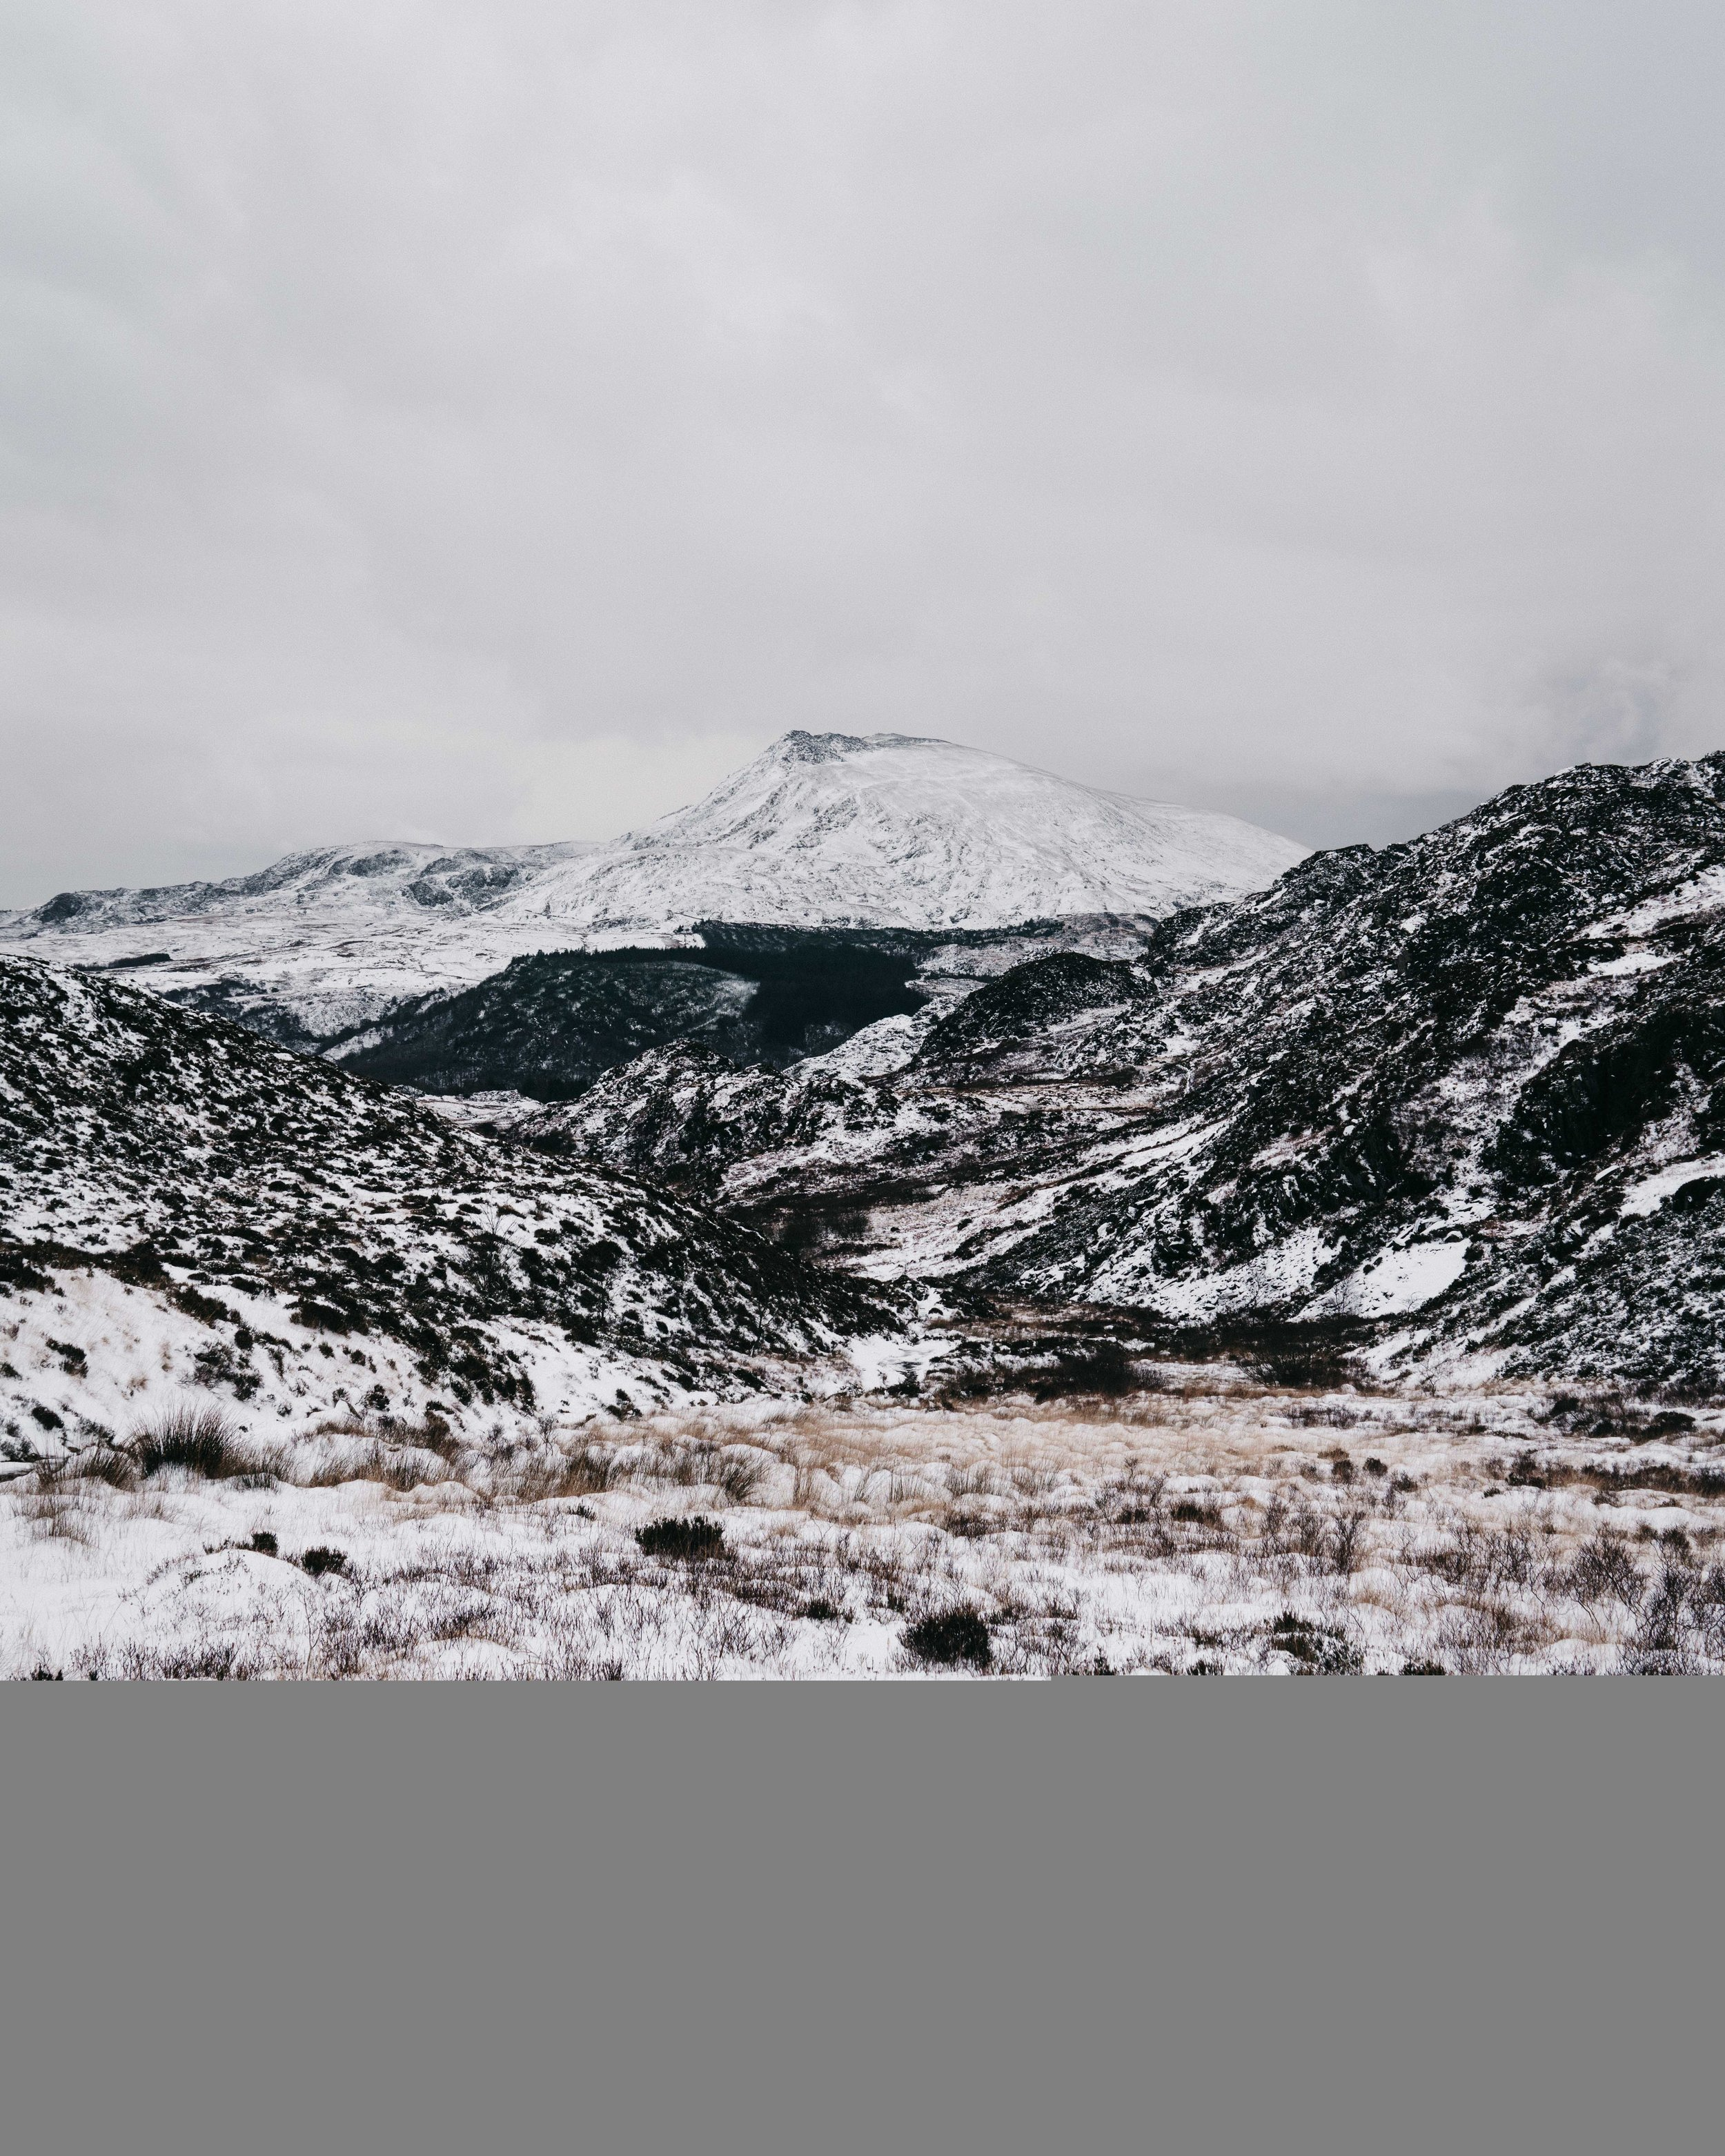 Moel Siabod in the distance